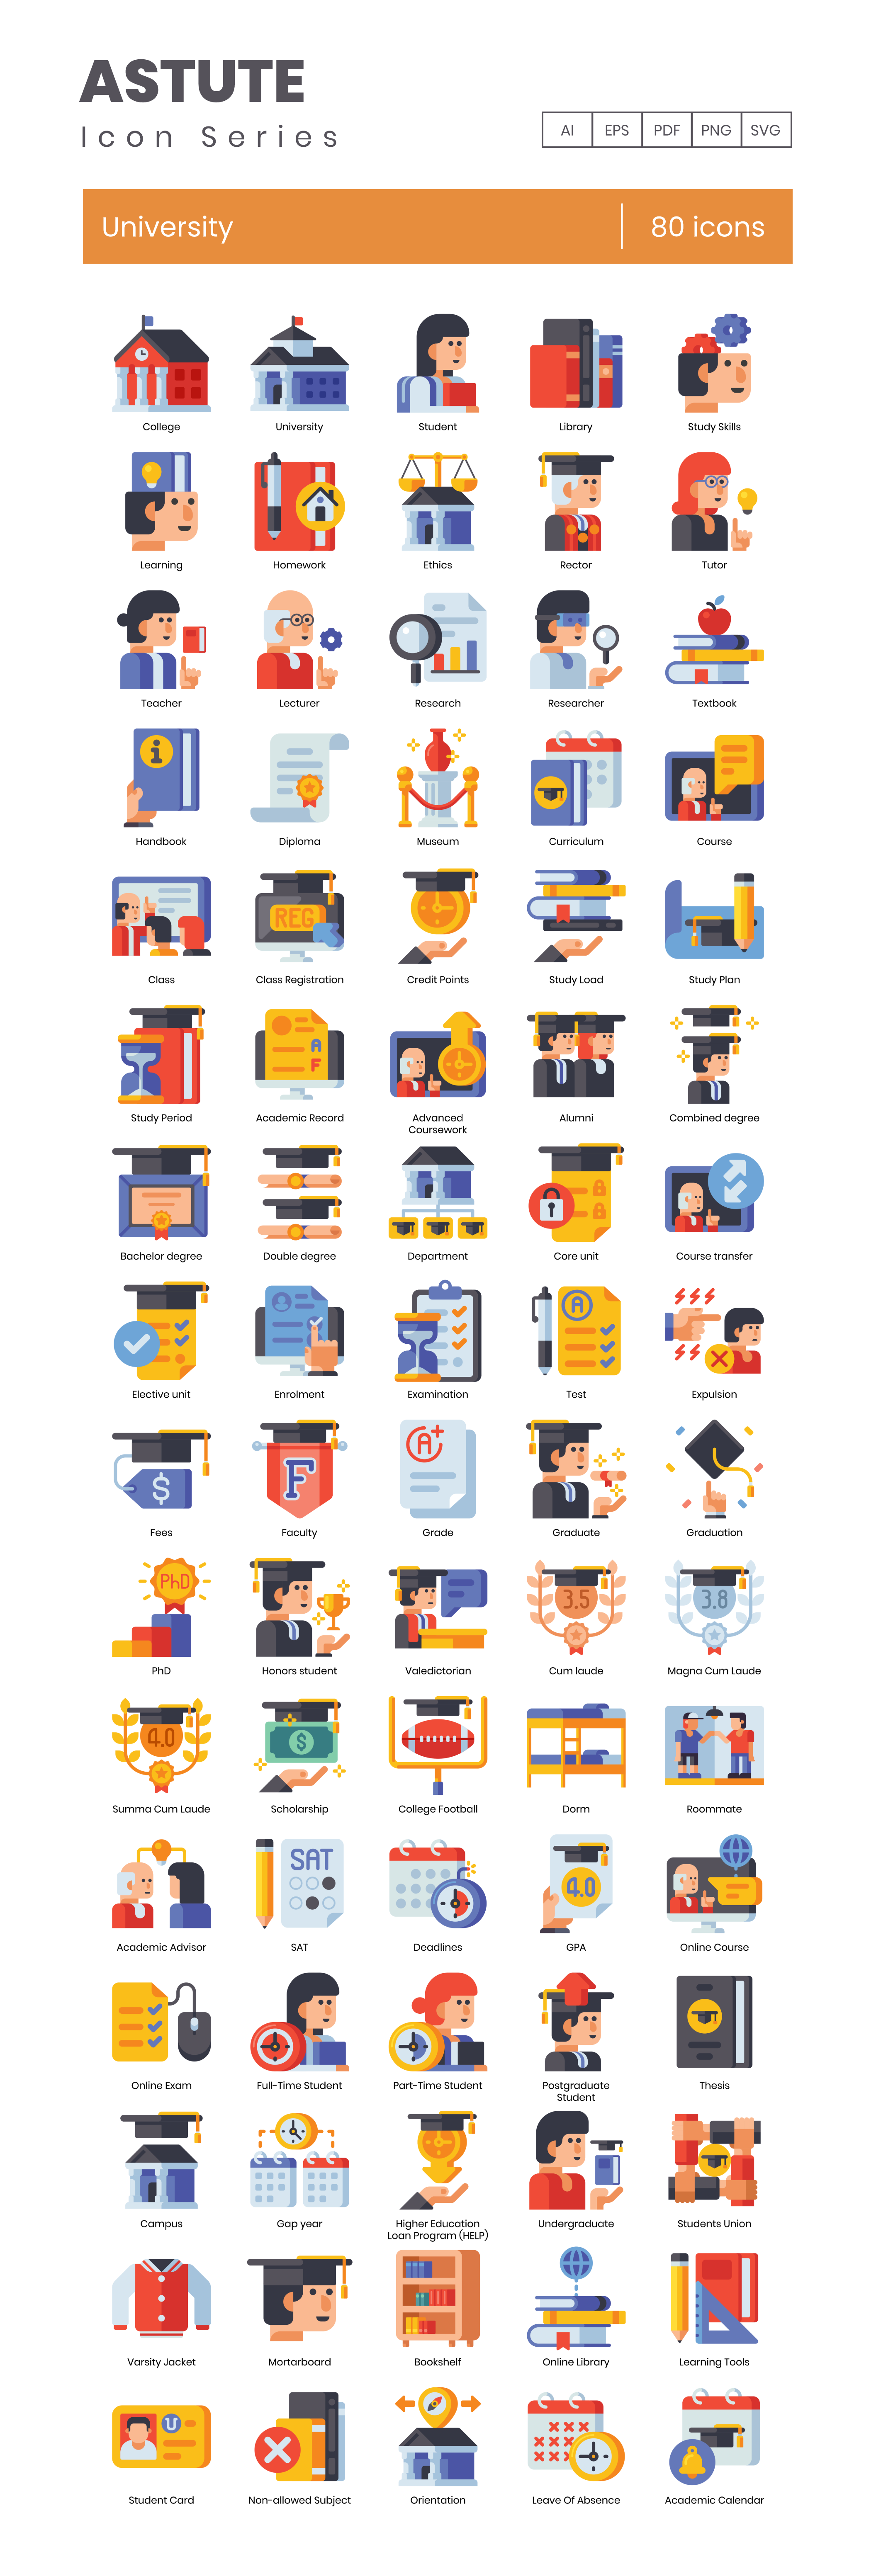 Preview Image for University Icon Set